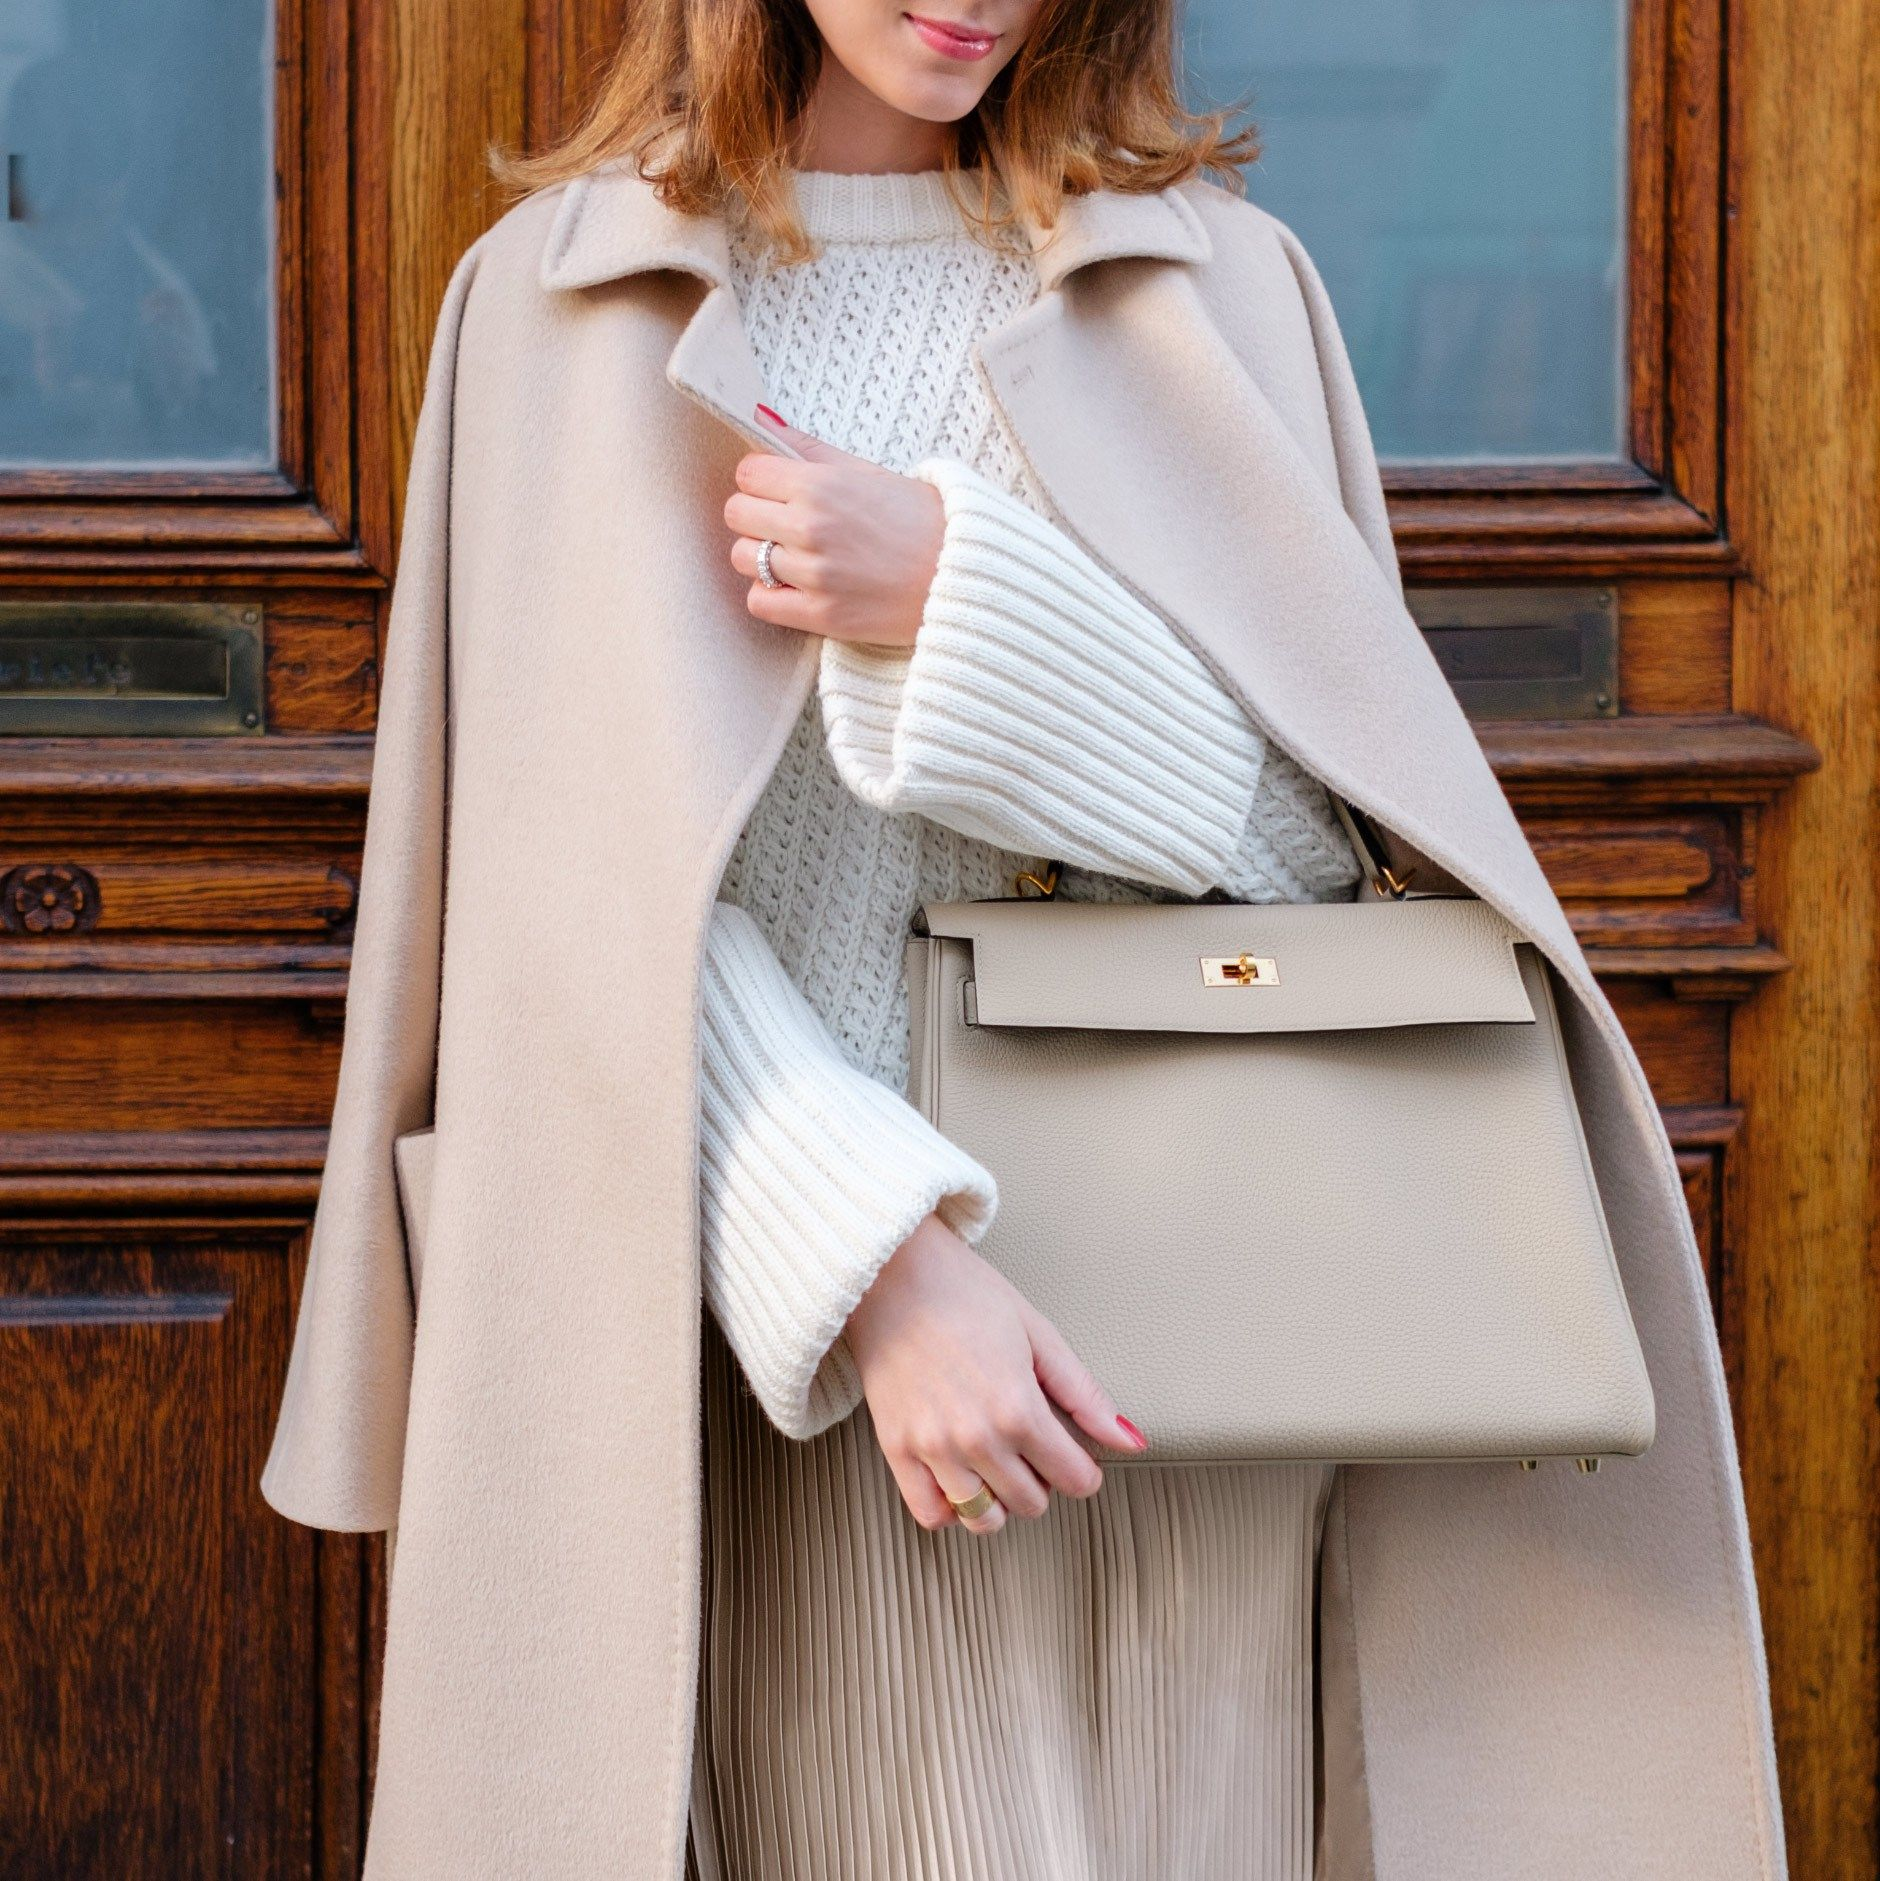 Wearing Hermès Kelly Bag in color Trench (size 32) and Max Mara Lampo coat 978c0a25caae6